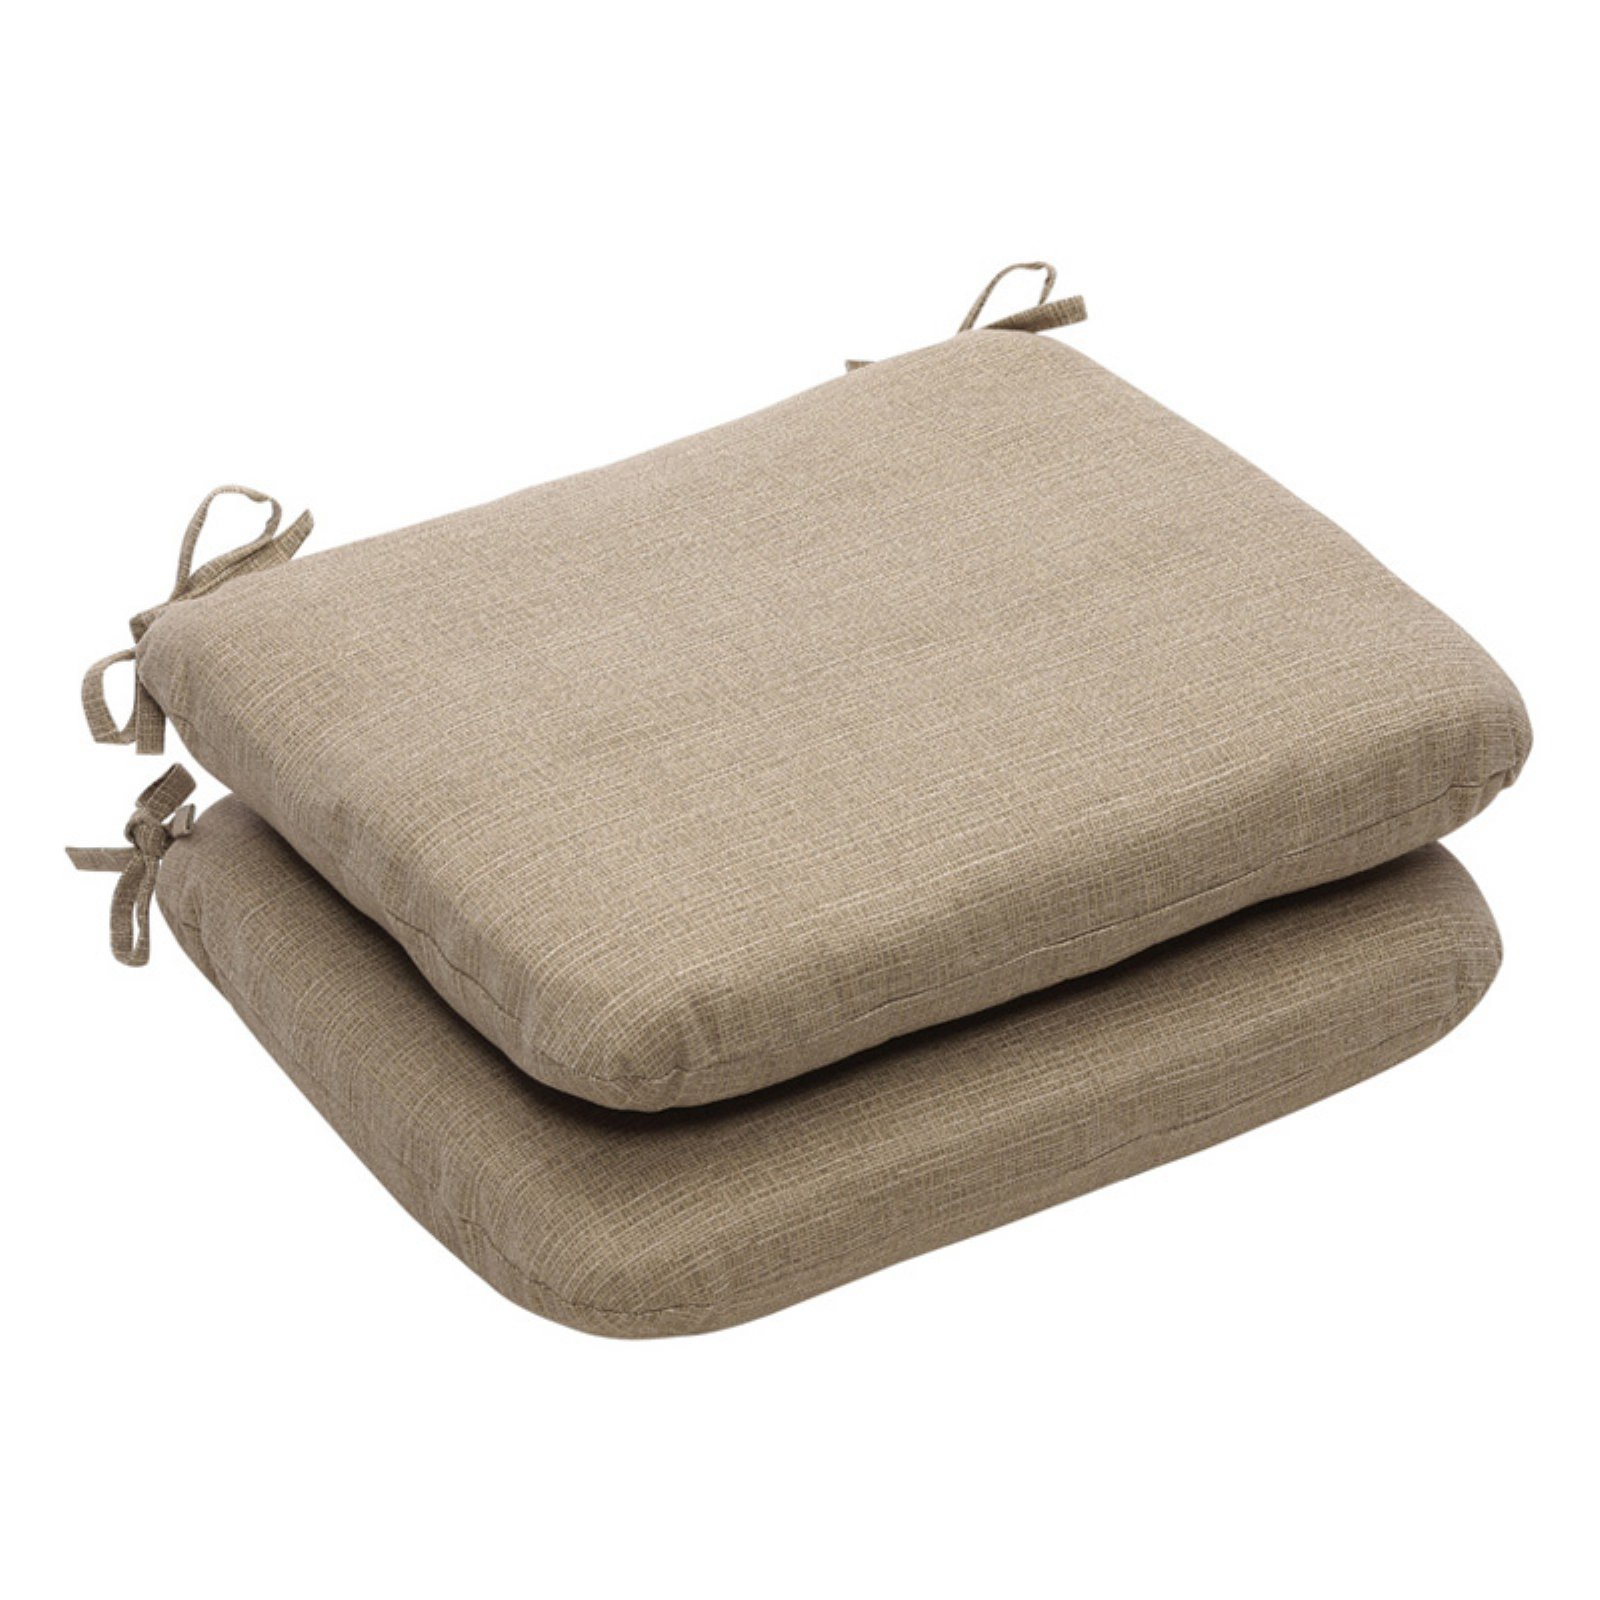 Pillow Perfect Outdoor Solid Seat Cushion with Ties - 18.5 x 15.5 x 3 in. - Set of 2